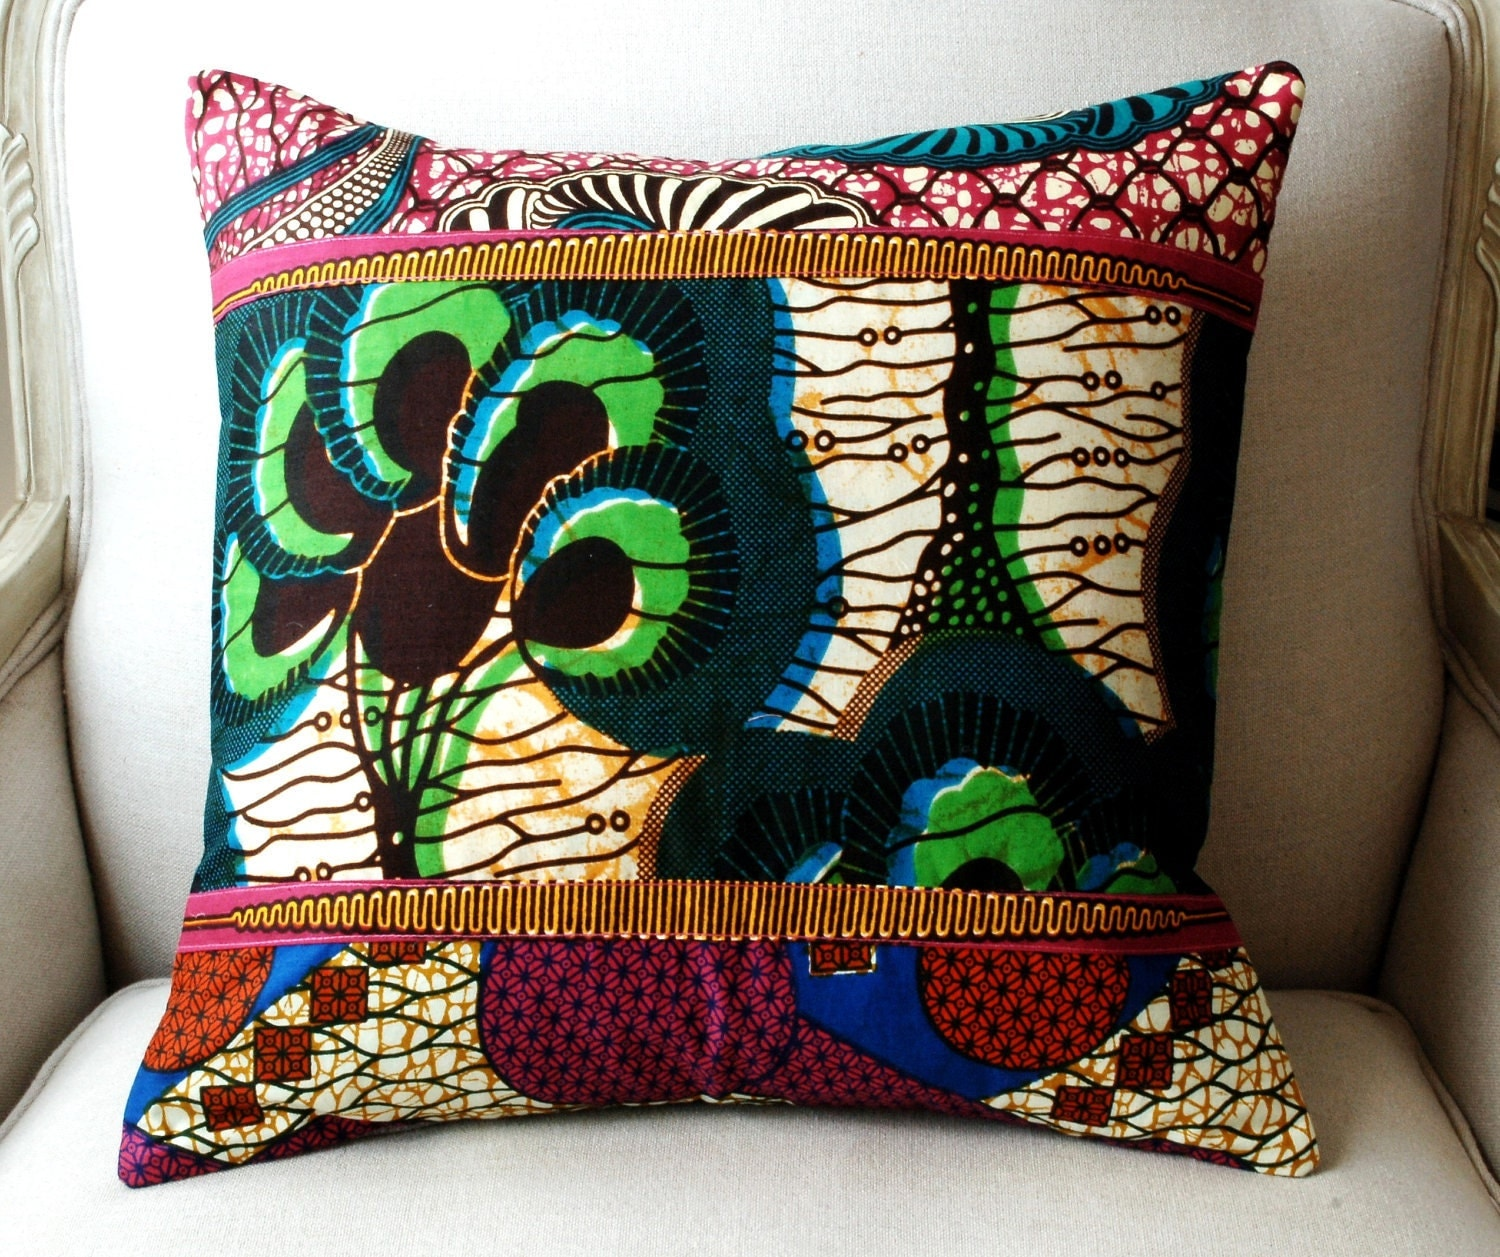 OOAK Handmade Patchwork Pillow cover - Genuine wax print batik/ grey burlap - 18 x 18 inches (45cms)